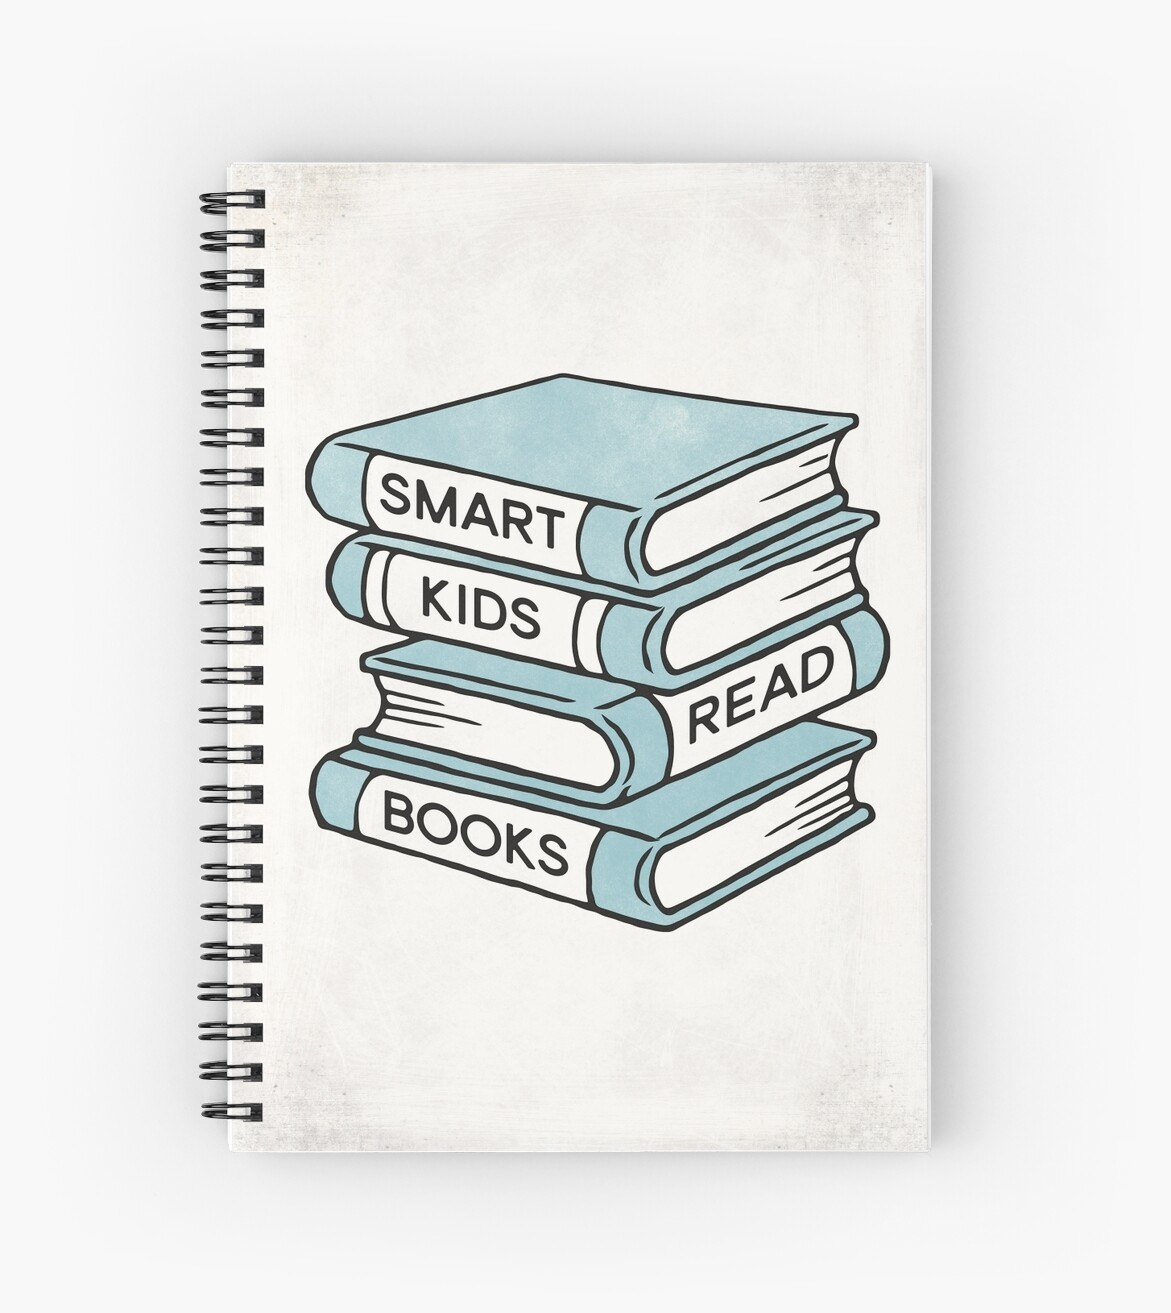 Smart Kids Read Books Book Lover Gift Inspirational Quote Spiral Notebook By Redhillprints